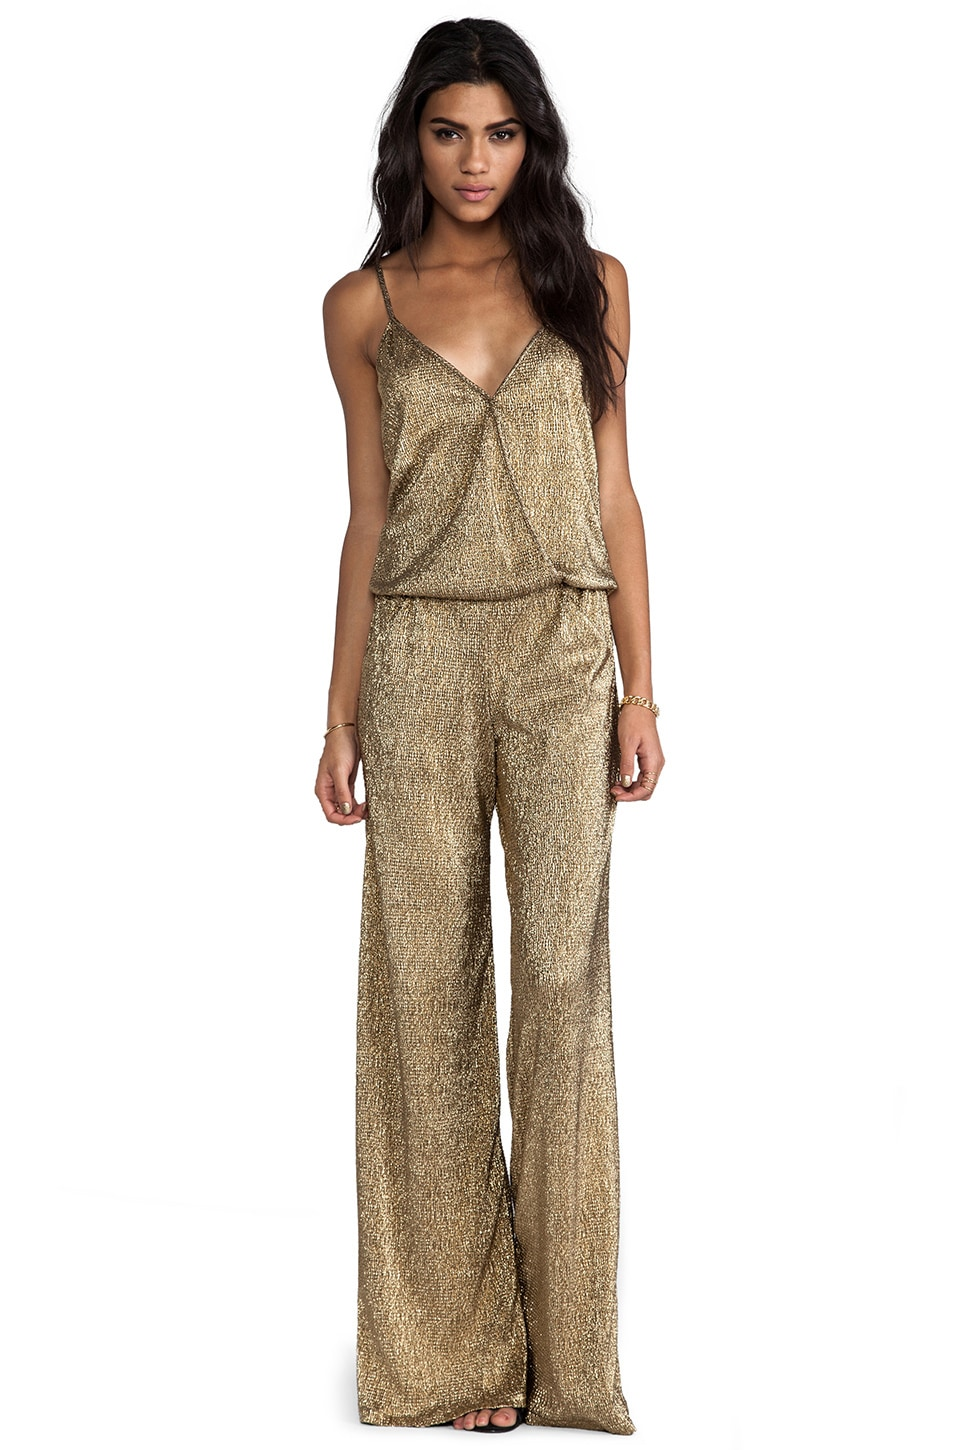 Alexis Vander Cross-Over Jumpsuit in Gold Foil